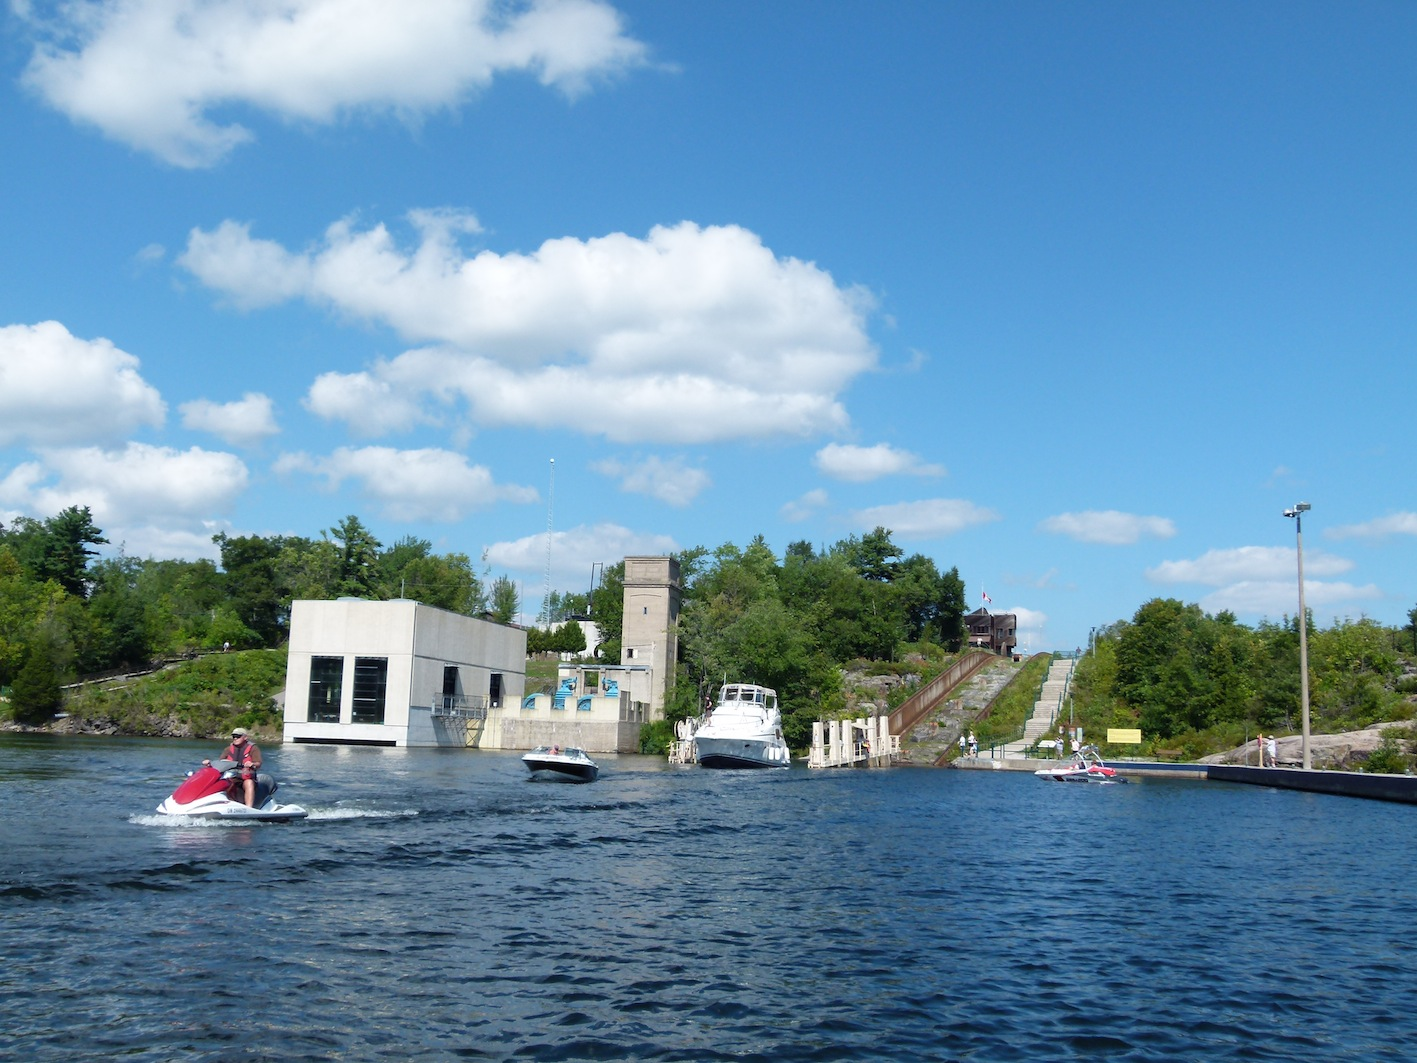 Exiting at the bottom of Big Chute on Trent Severn Waterway Sea Doo Tour